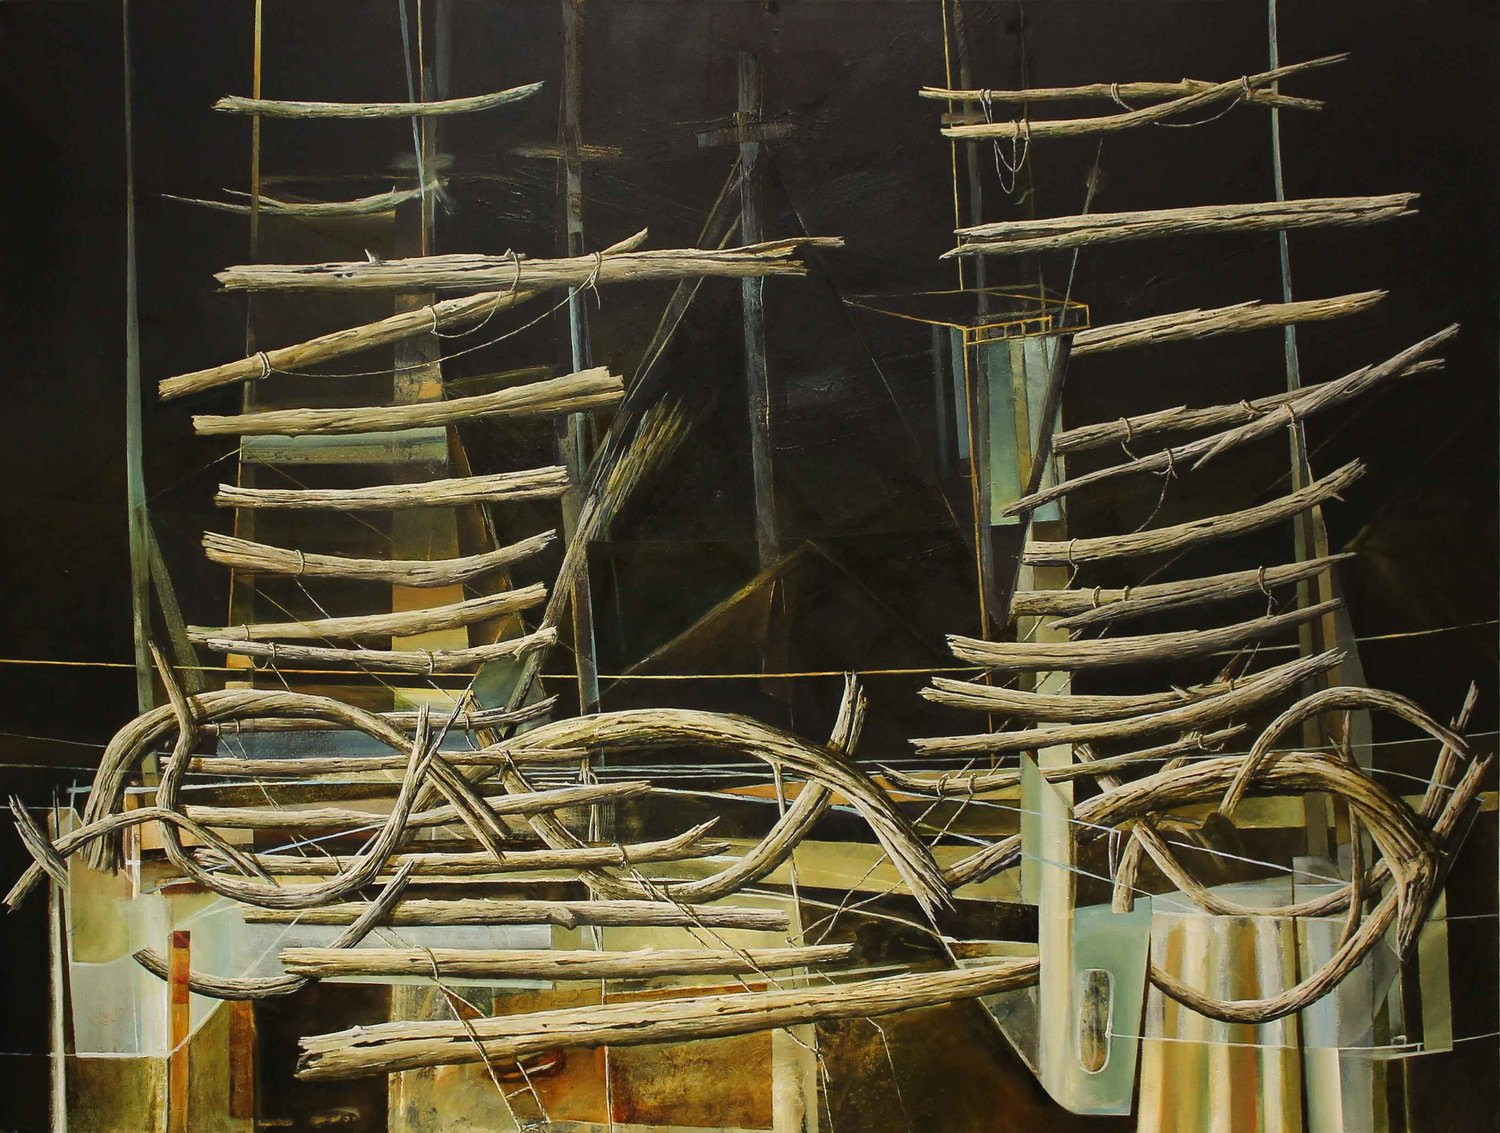 In+the+Line+of+Your+Tries,+Jim+Jobe,+Acrylic+on+Canvas,+36x48+in,+LOW+RES.jpg